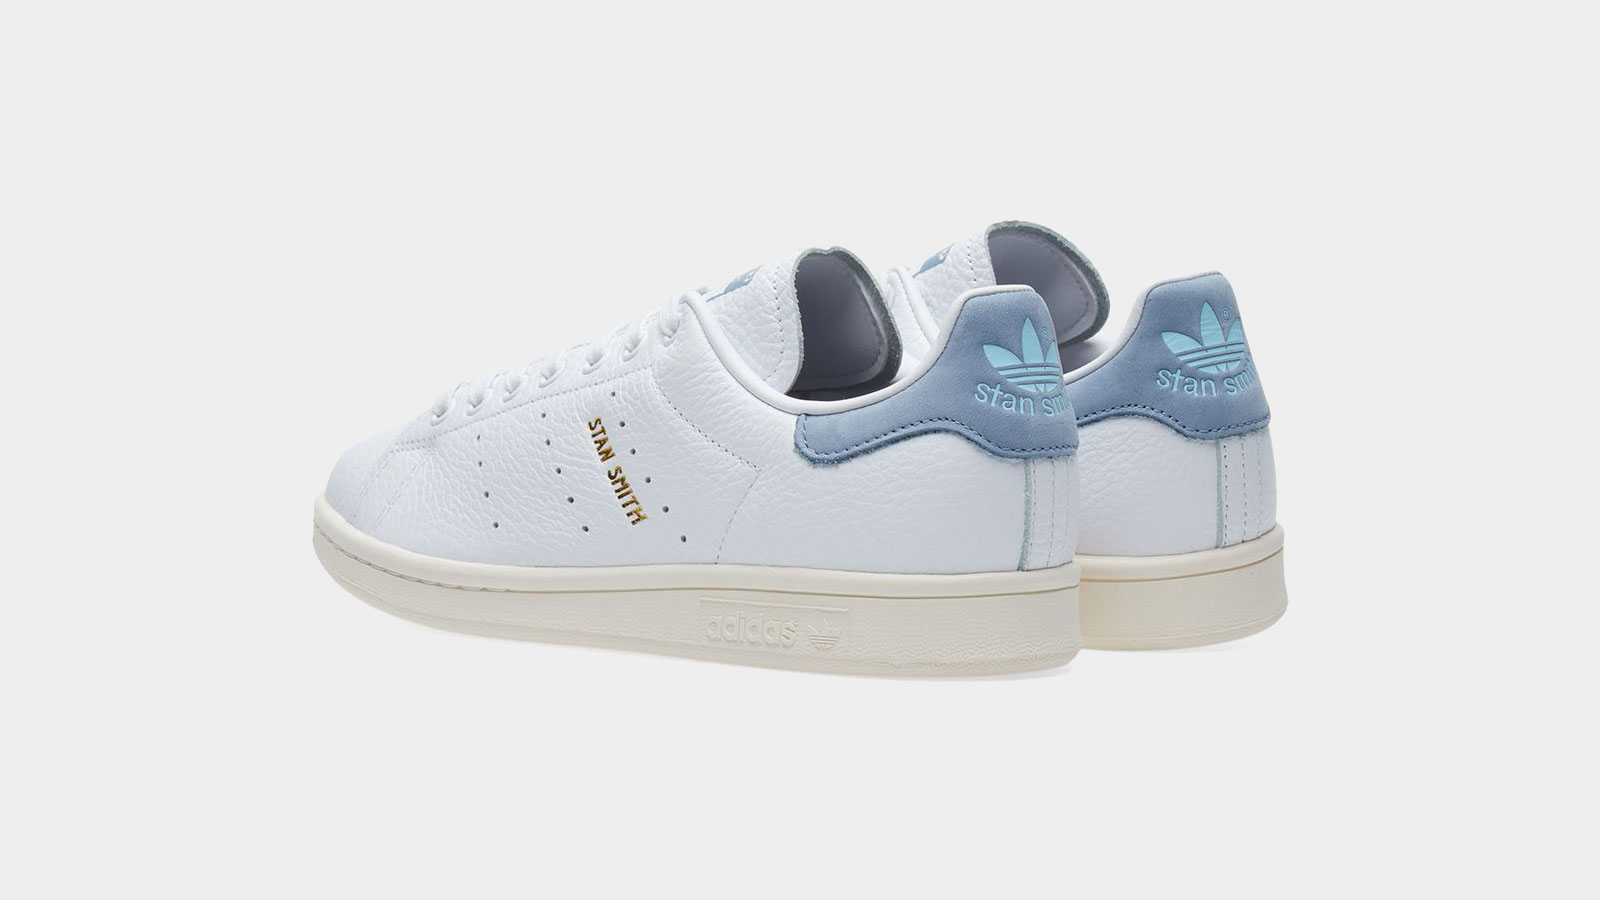 Adidas Originals Stan Smith 'Tumbled Leather' - White & Tactile Blue